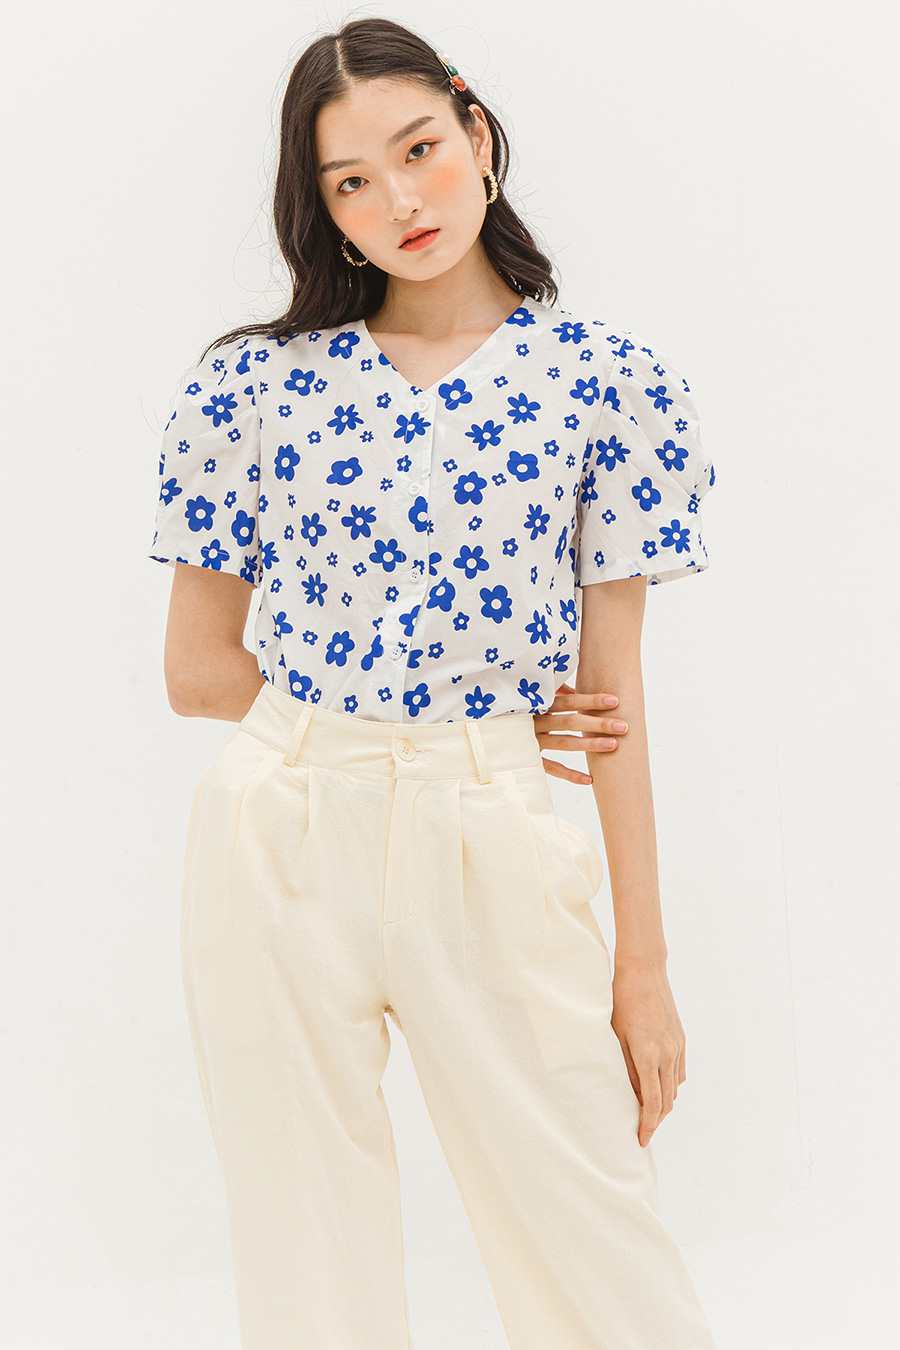 LEIANI TOP - POPPY